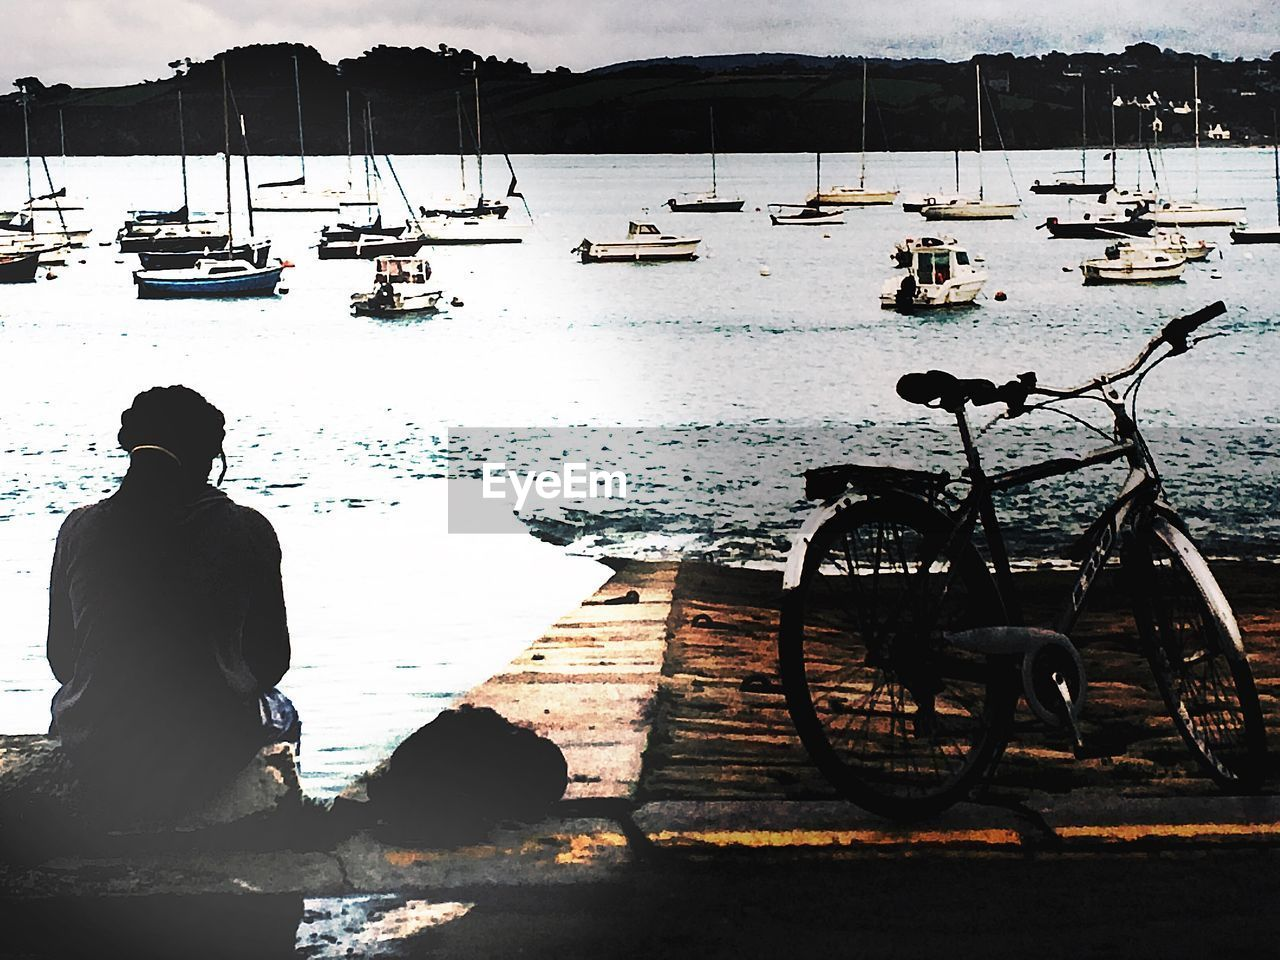 water, transportation, nautical vessel, mode of transportation, sea, nature, day, real people, one person, men, lifestyles, moored, sunlight, beauty in nature, sitting, bicycle, rear view, outdoors, looking at view